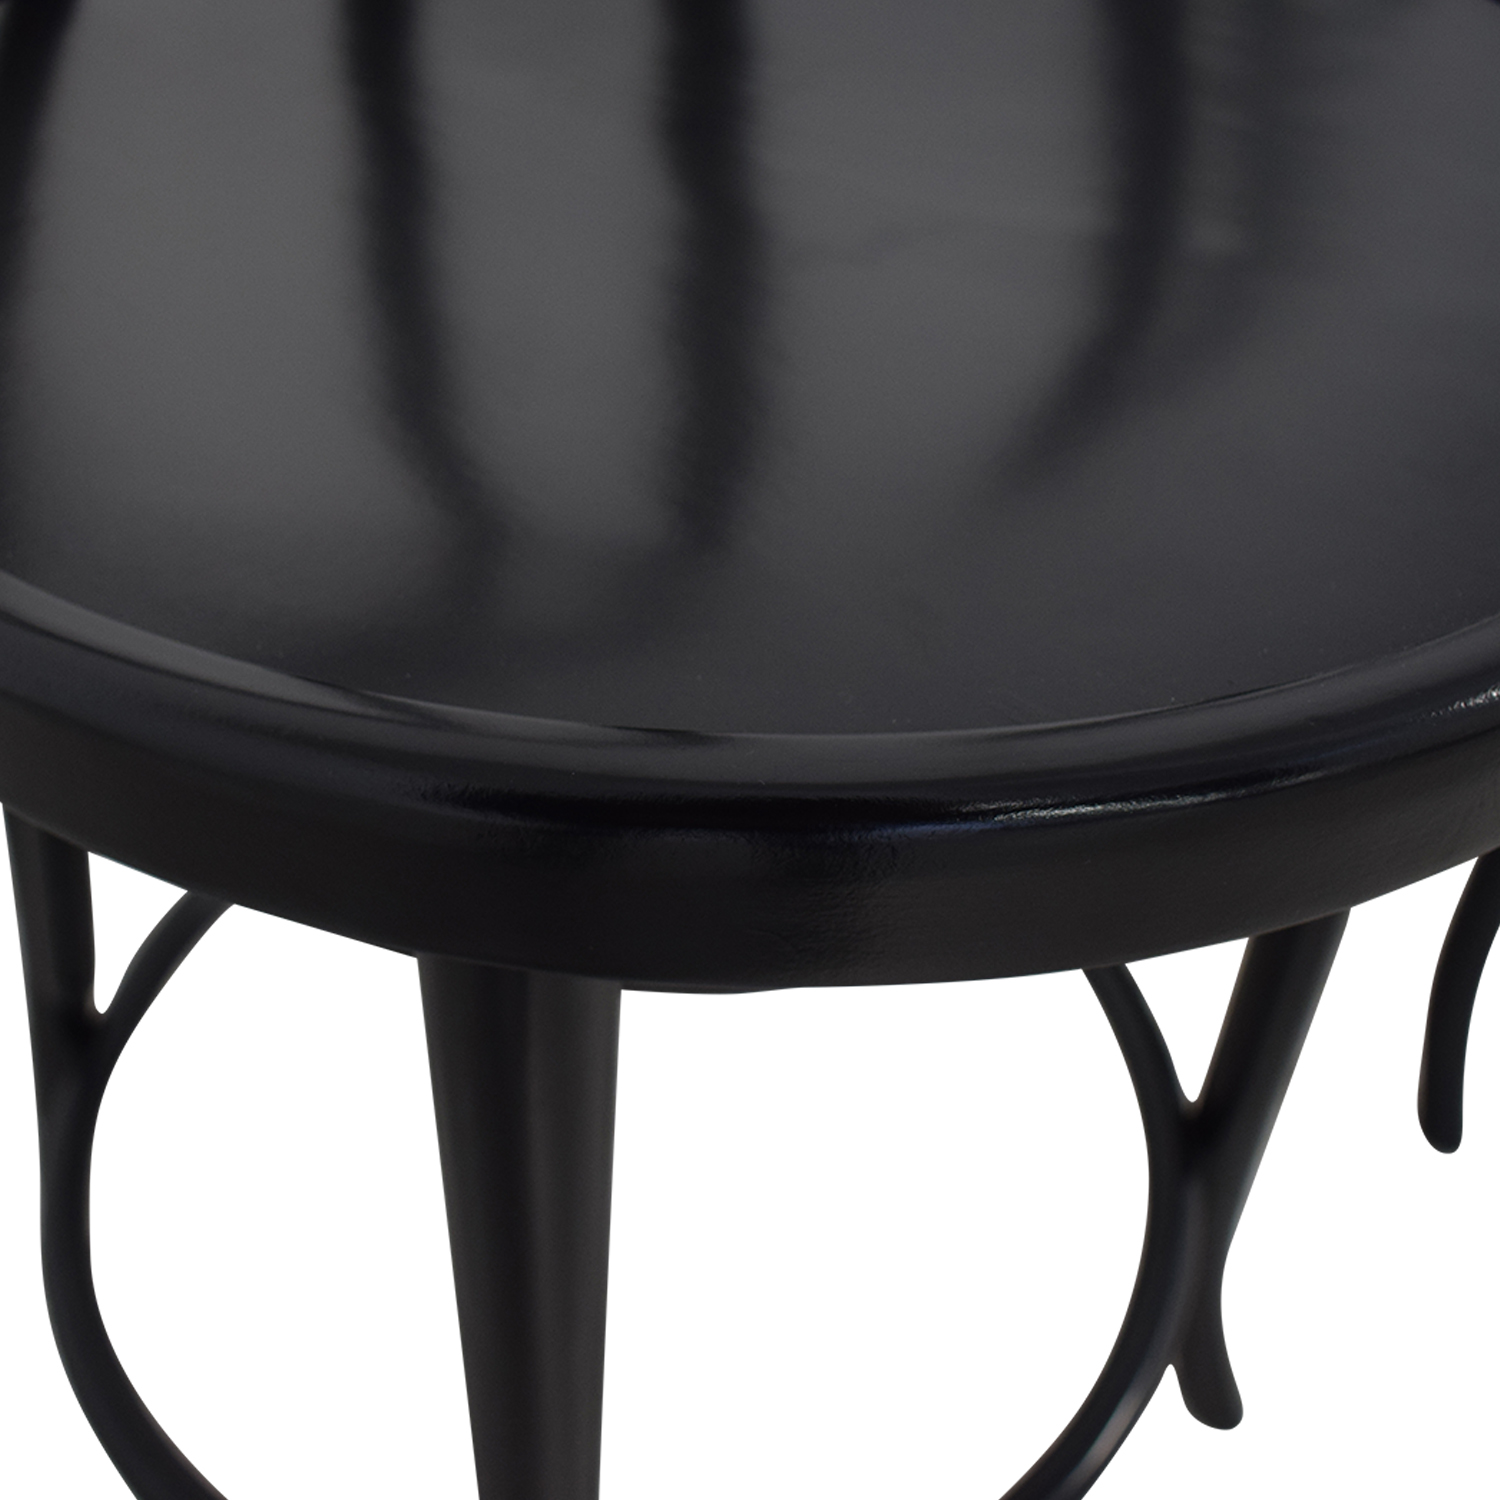 Crate & Barrel Crate & Barrel Vienna Black Matte Counter Stools price